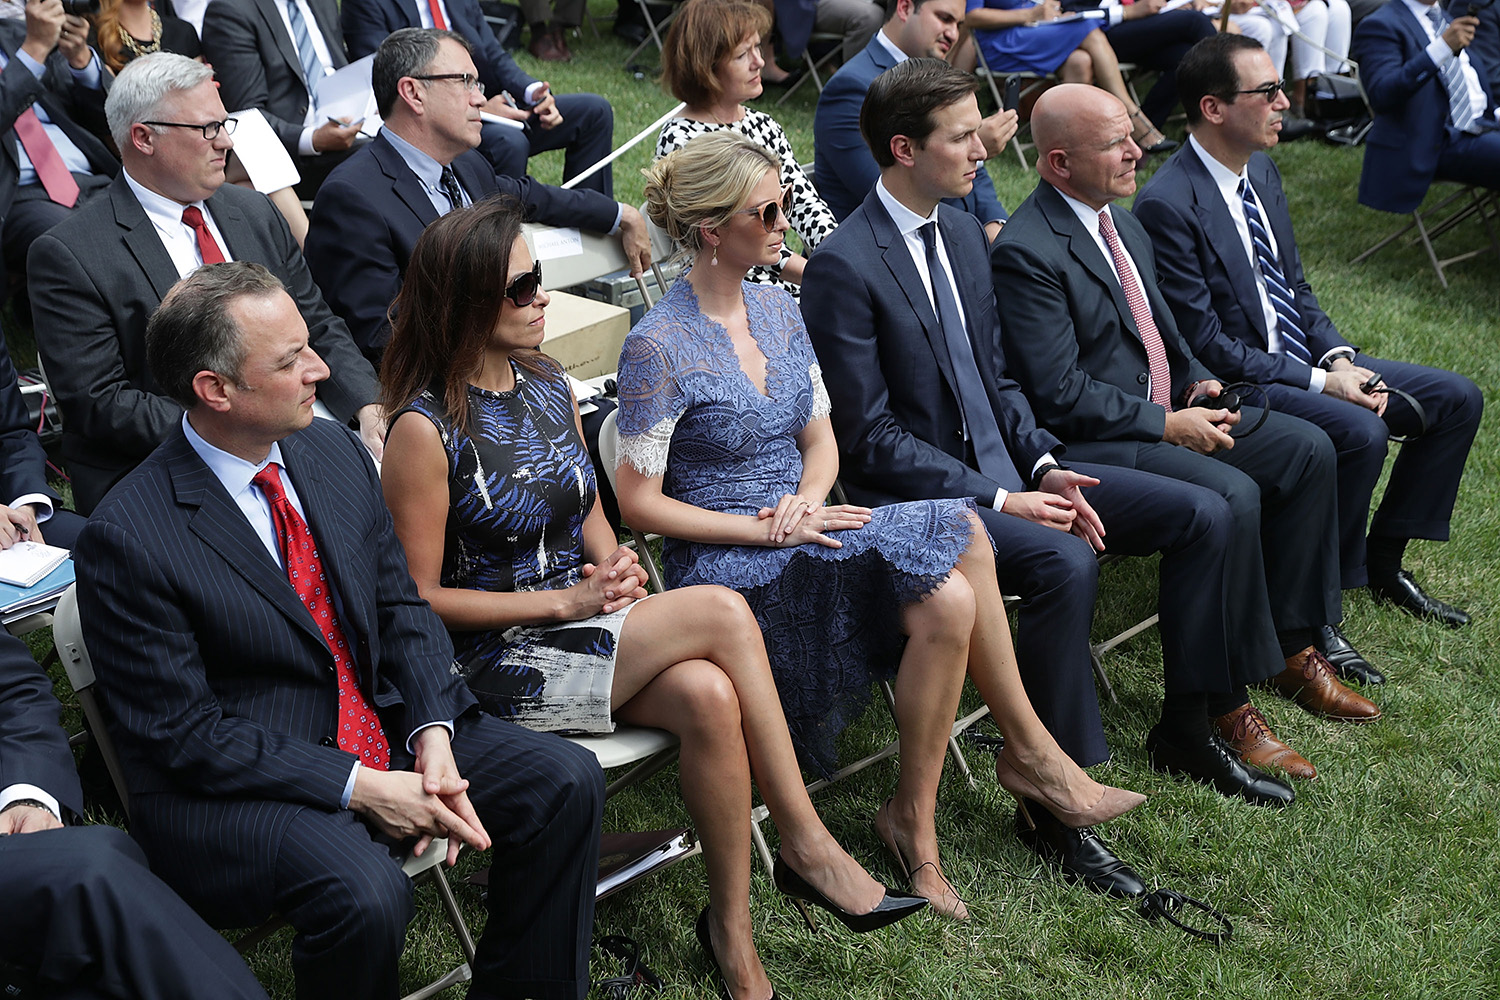 (L-R) White House Chief of Staff Reince Priebus, Deputy National Security Advisor Dina Powell, Ivanka Trump, Senior Advisor to the President Jared Kushner, National Security Advisor H.R. McMaster and Treasury Secretary Steven Mnuchin attend a news conference with U.S. President Donald Trump and Lebanese Prime Minister Saad Hariri in the Rose Garden at the White House July 25, 2017 in Washington, DC. Trump began the news conference by announcing that Senate Republicans had passed a procedural vote on repealing Obamacare. (Photo by Chip Somodevilla/Getty Images)